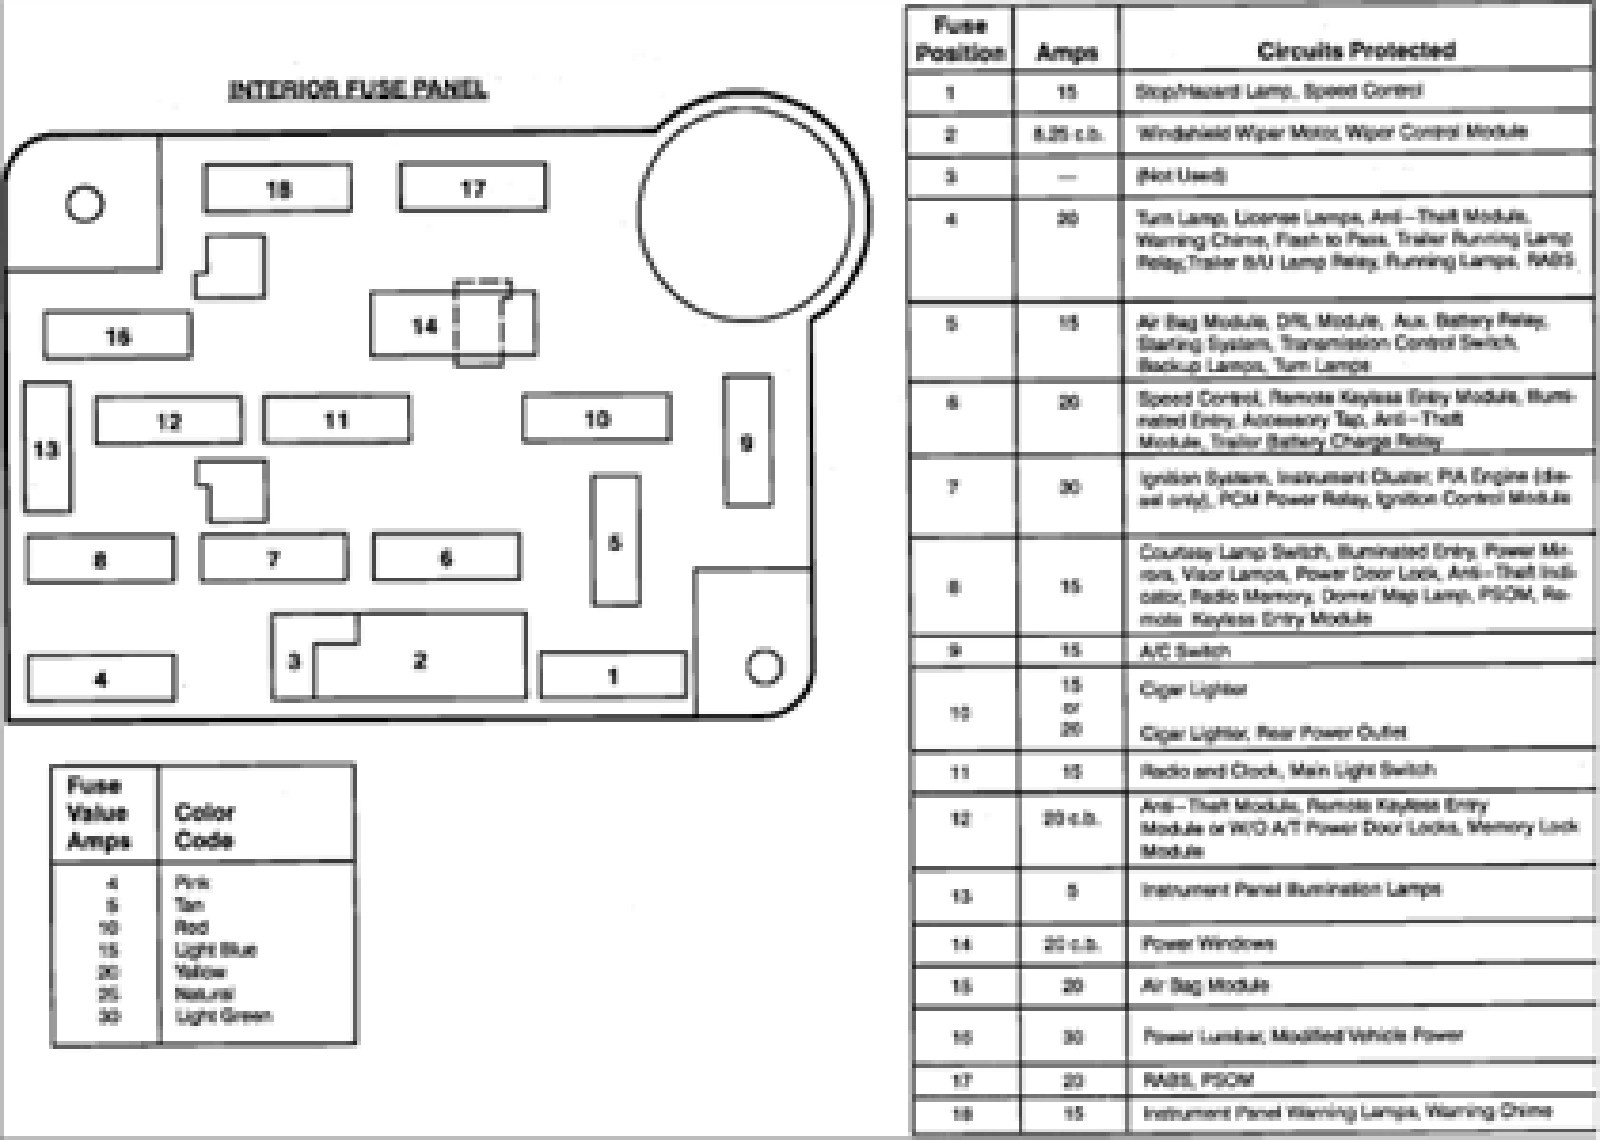 hight resolution of 1989 ford f 150 fuse box diagram data wiring diagram schema 2011 ford f550 fuse box 1989 ford f150 fuse box